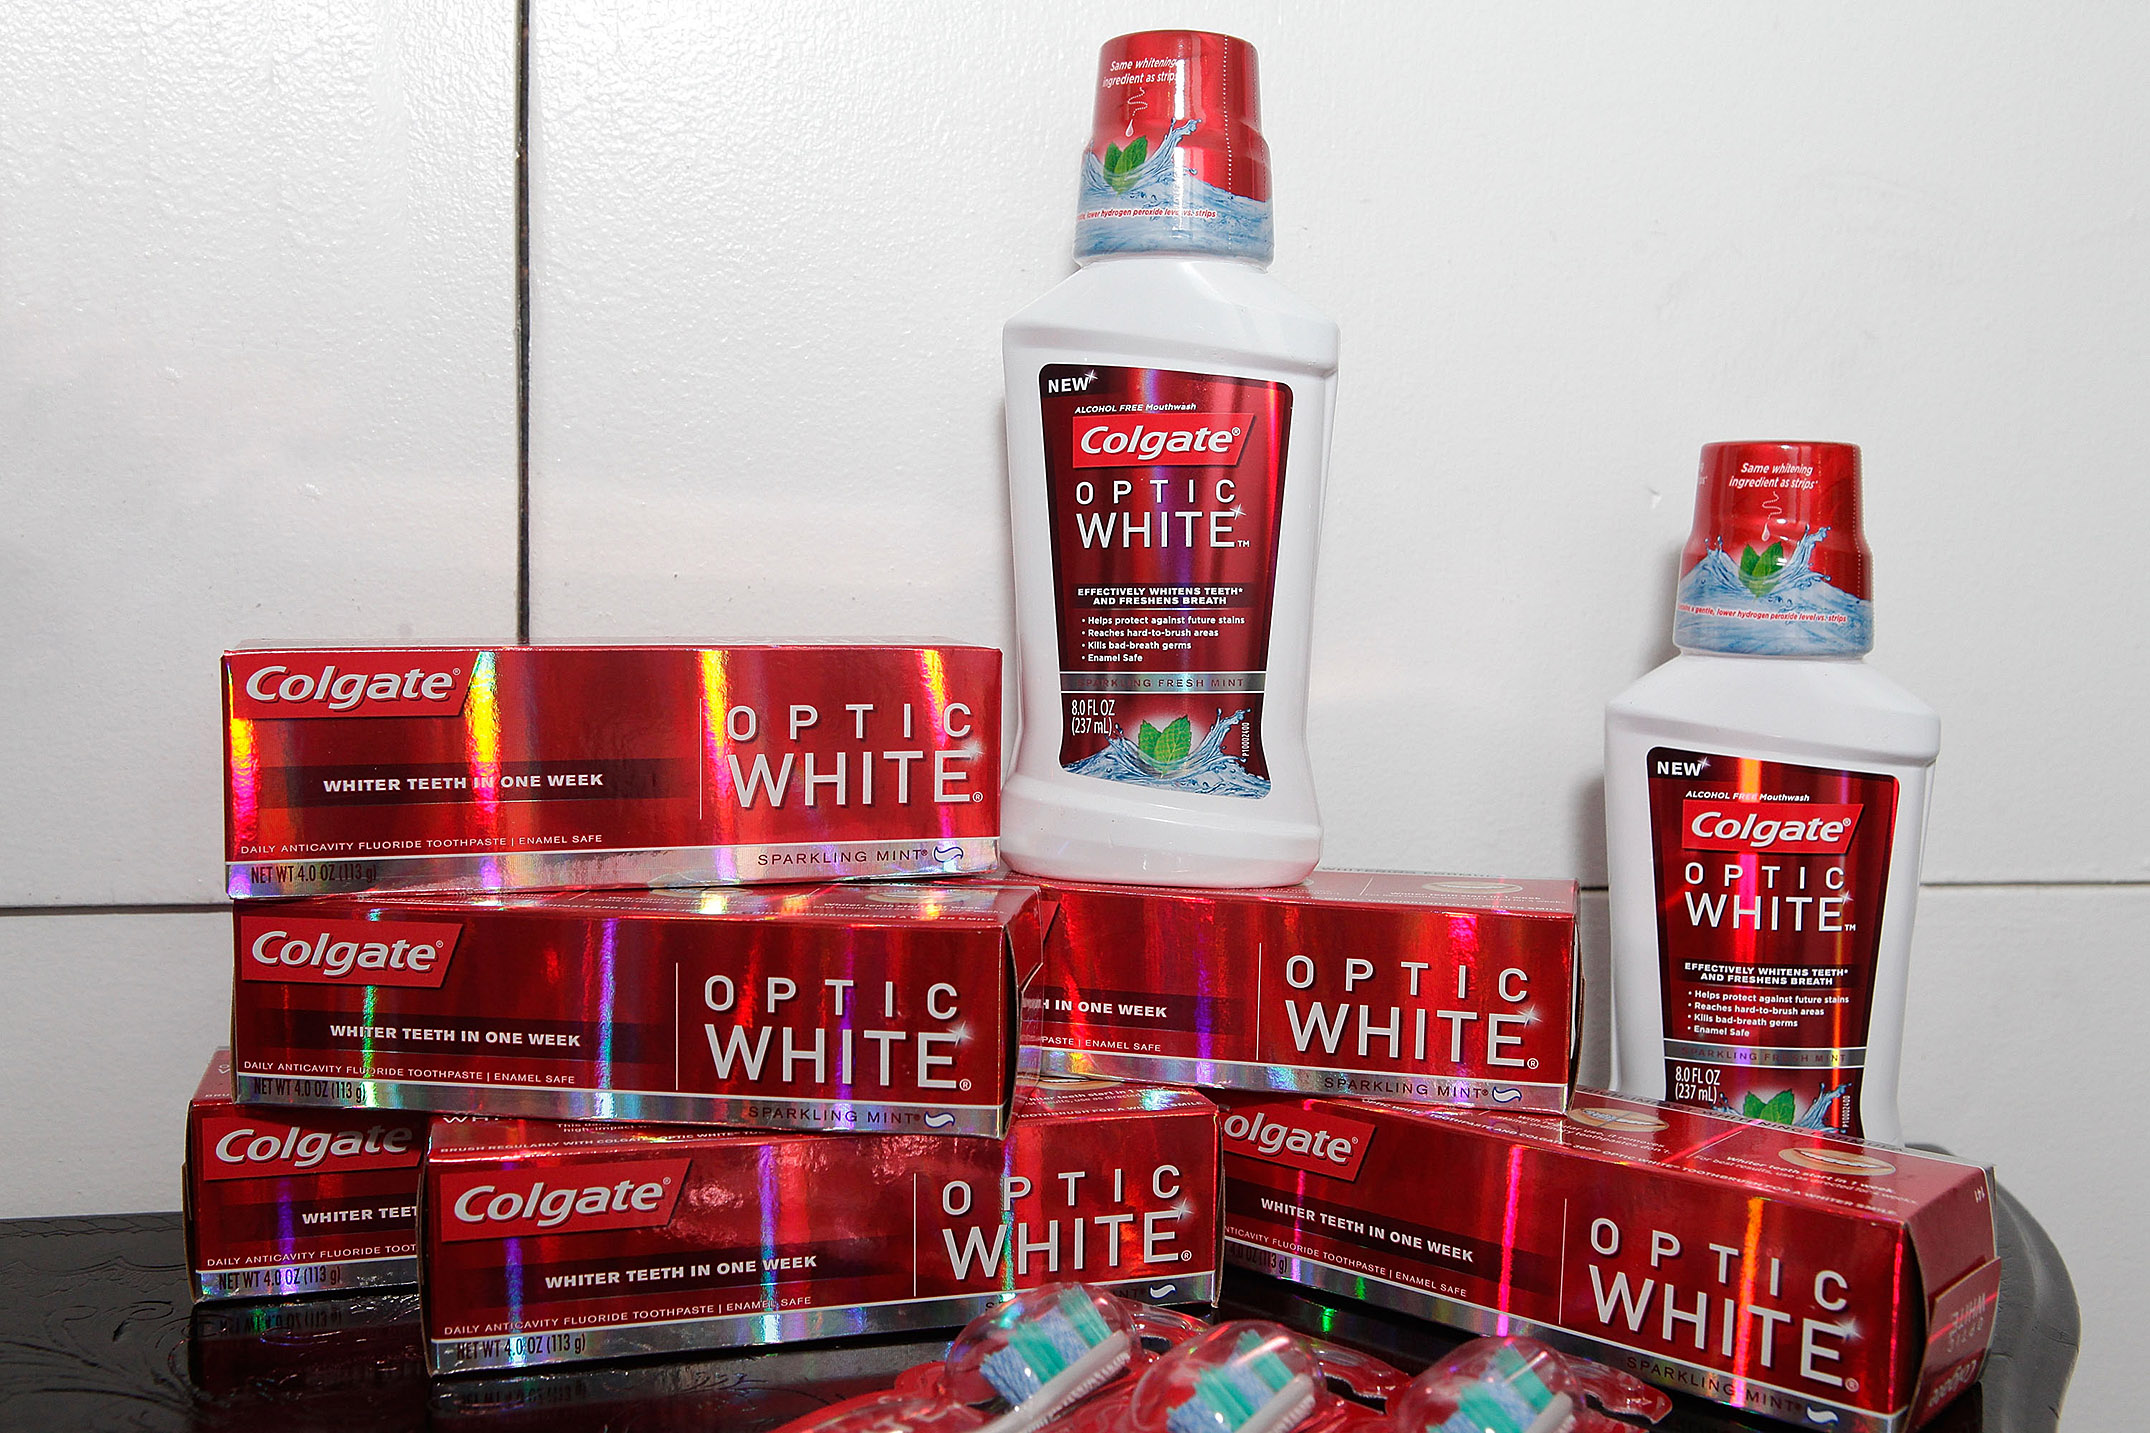 Colgate Optic White products.